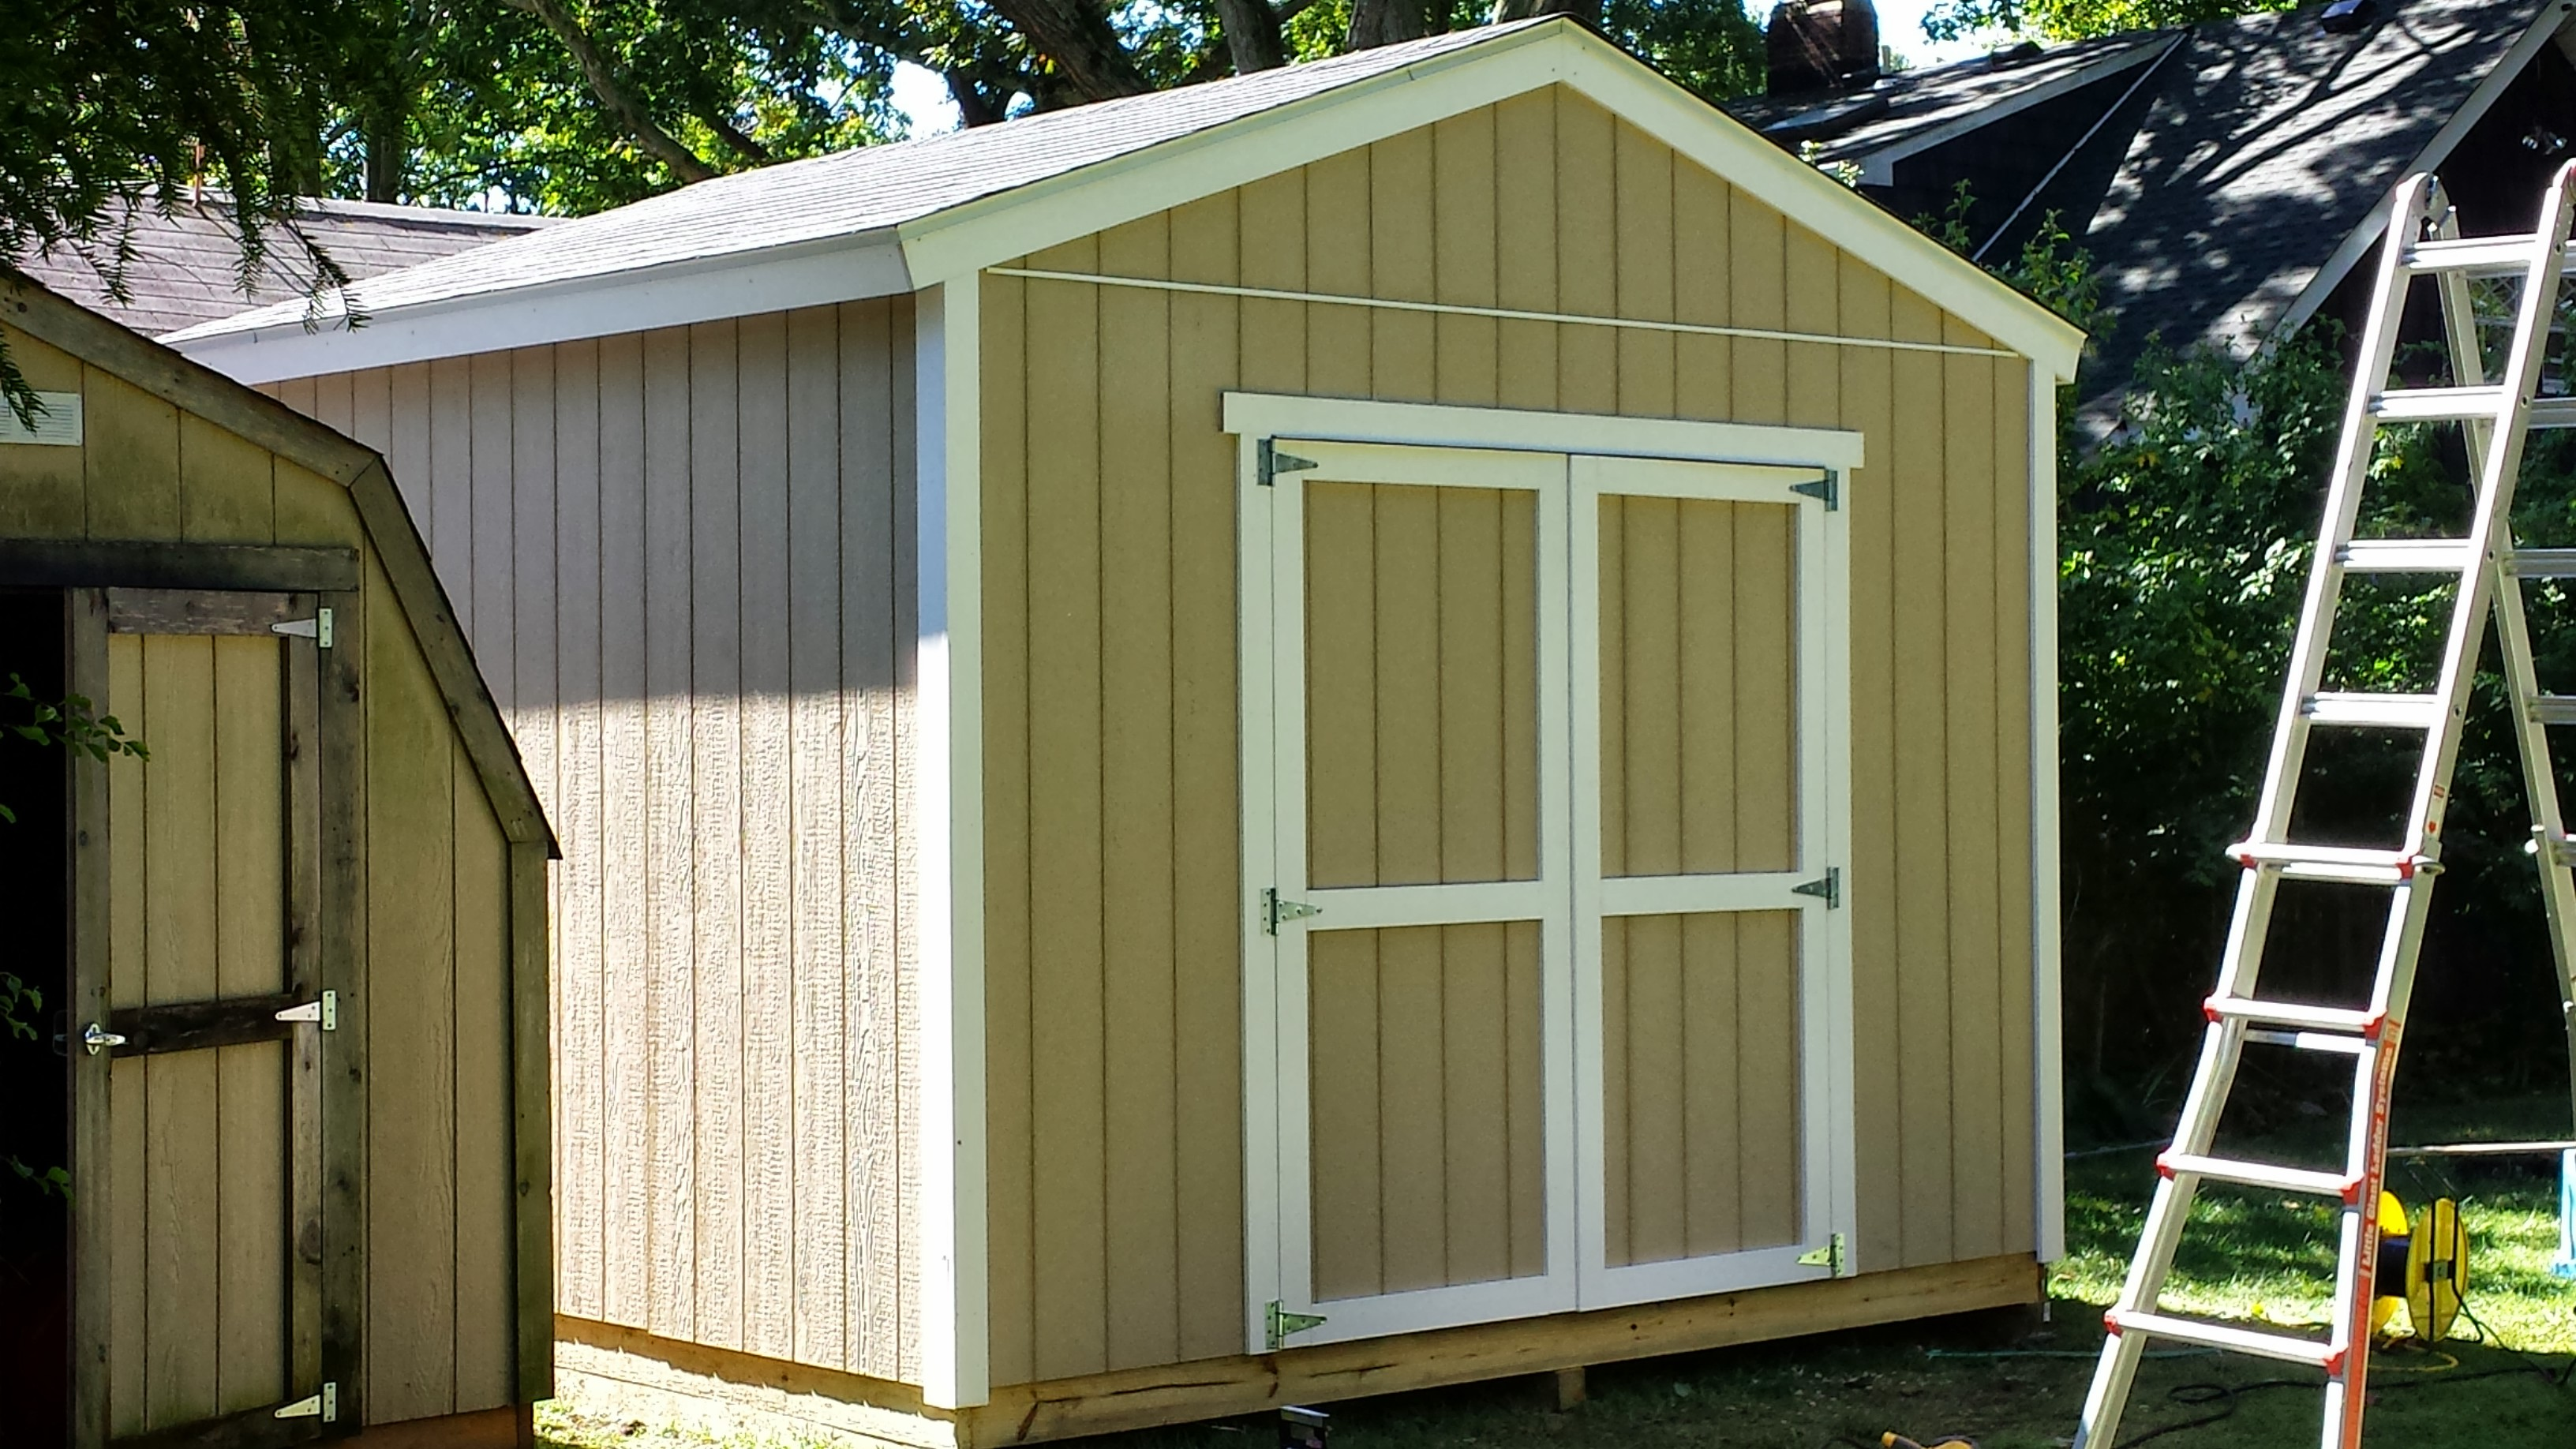 Apartment Garage Sheds In Waterford Wi. Apartment Storage Sheds In  Waterford Wi Diy Shed Plans Storage Sheds Roseburg Ohio Ramp For Garage Shed  At Home ...